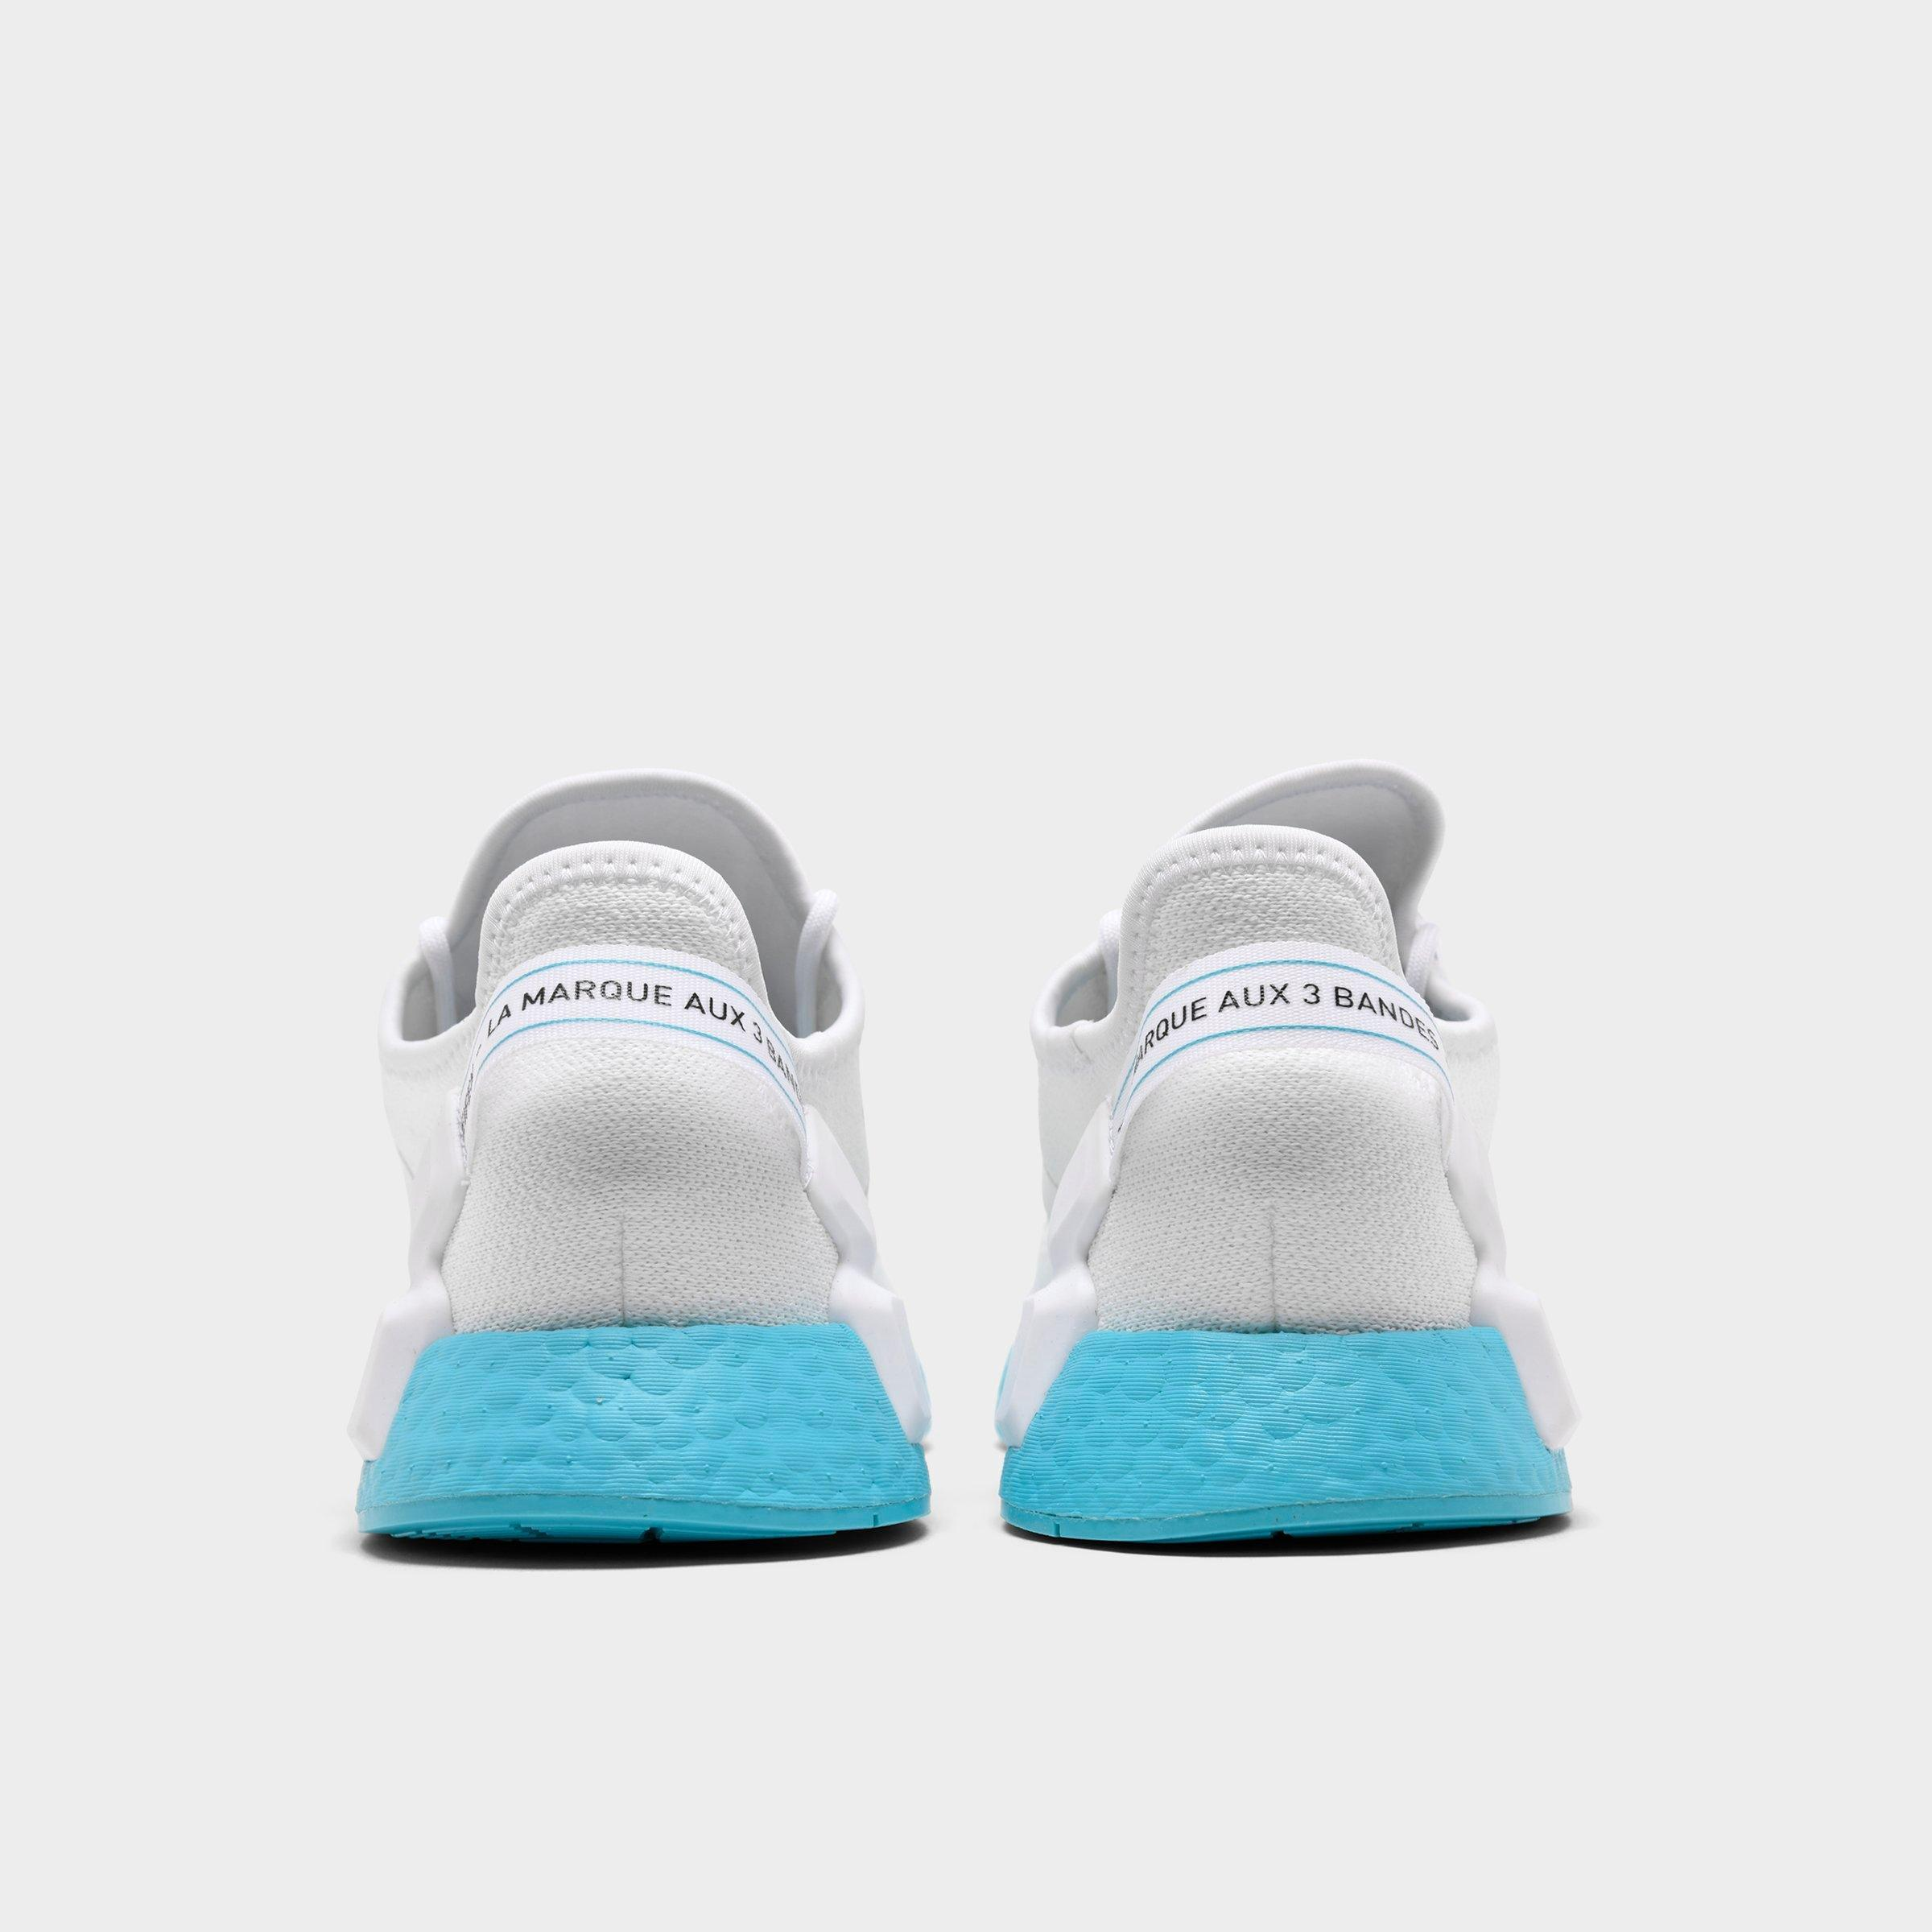 Adidas Nmd R1 V2 Cloud White Core Black For